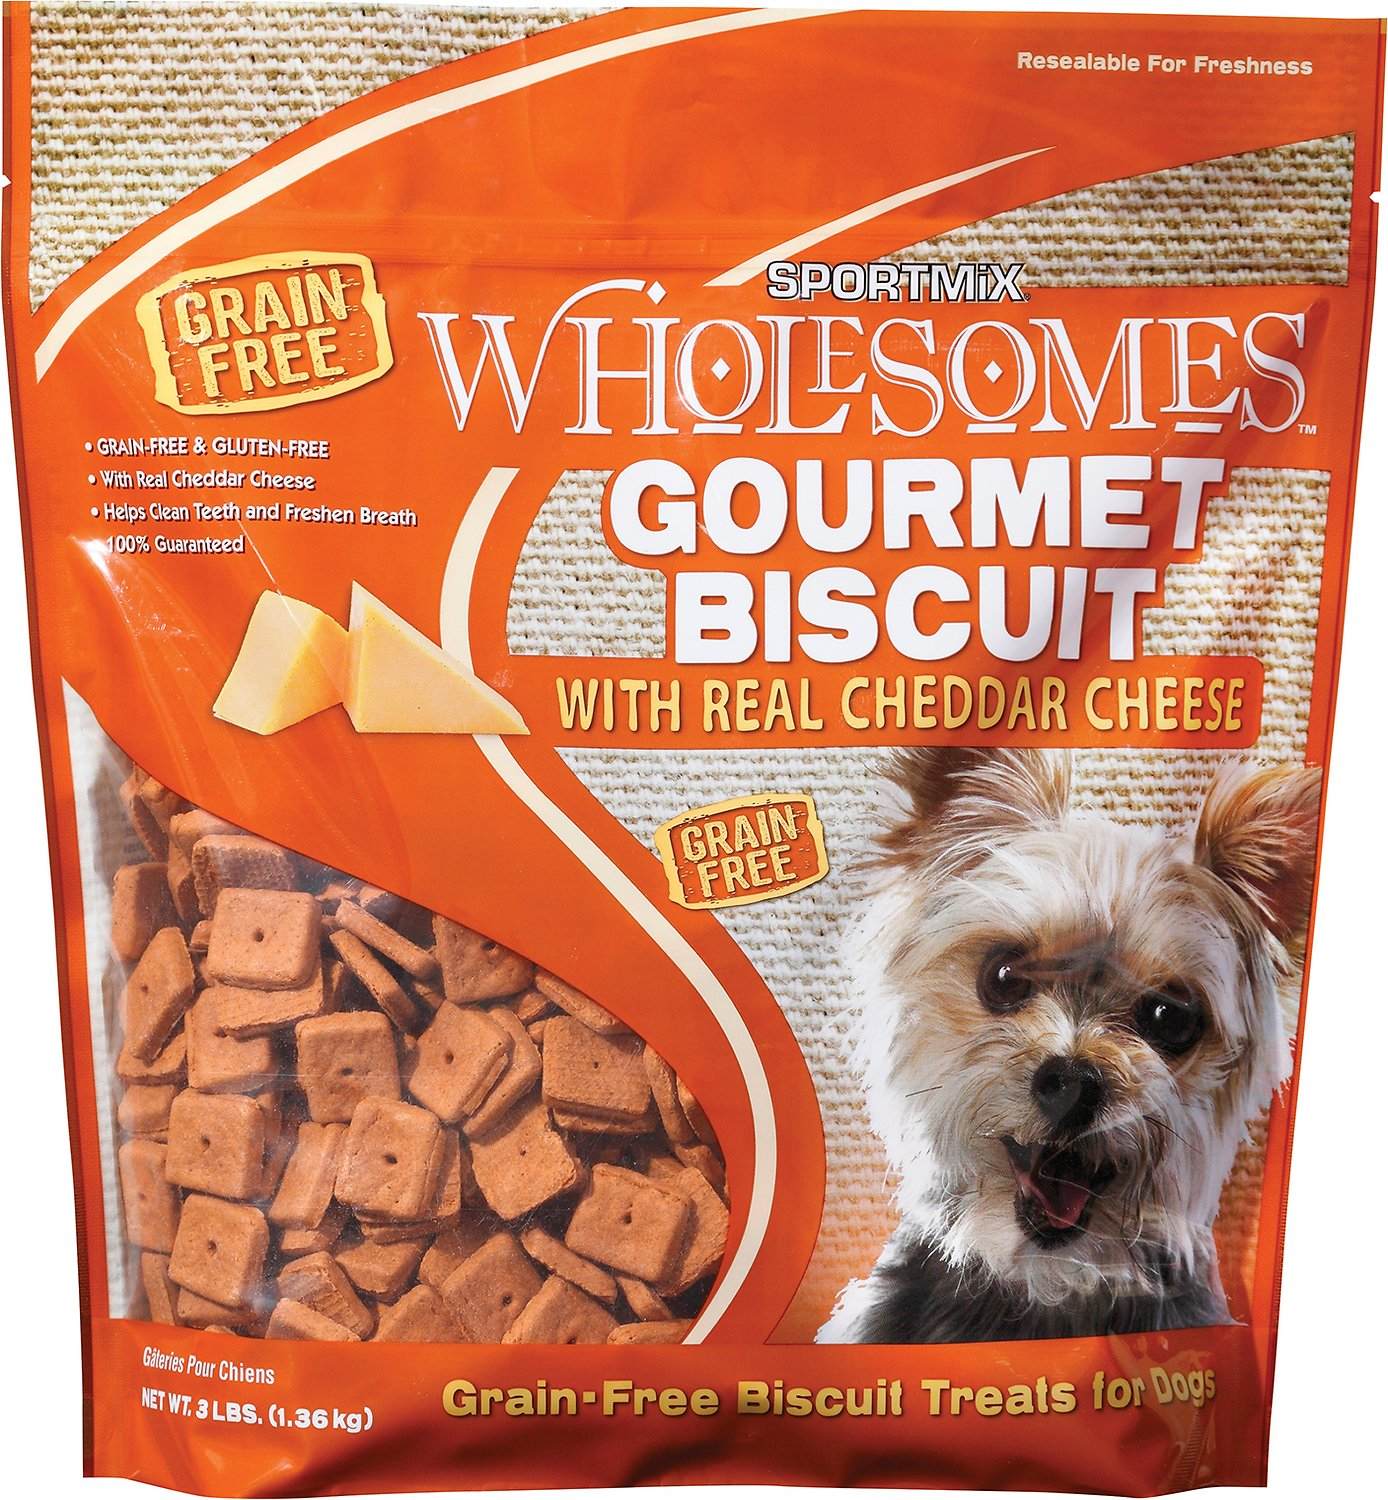 SPORTMiX Wholesomes Grain-Free Premium Gourmet Biscuit with Real Cheddar Cheese Dog Treats